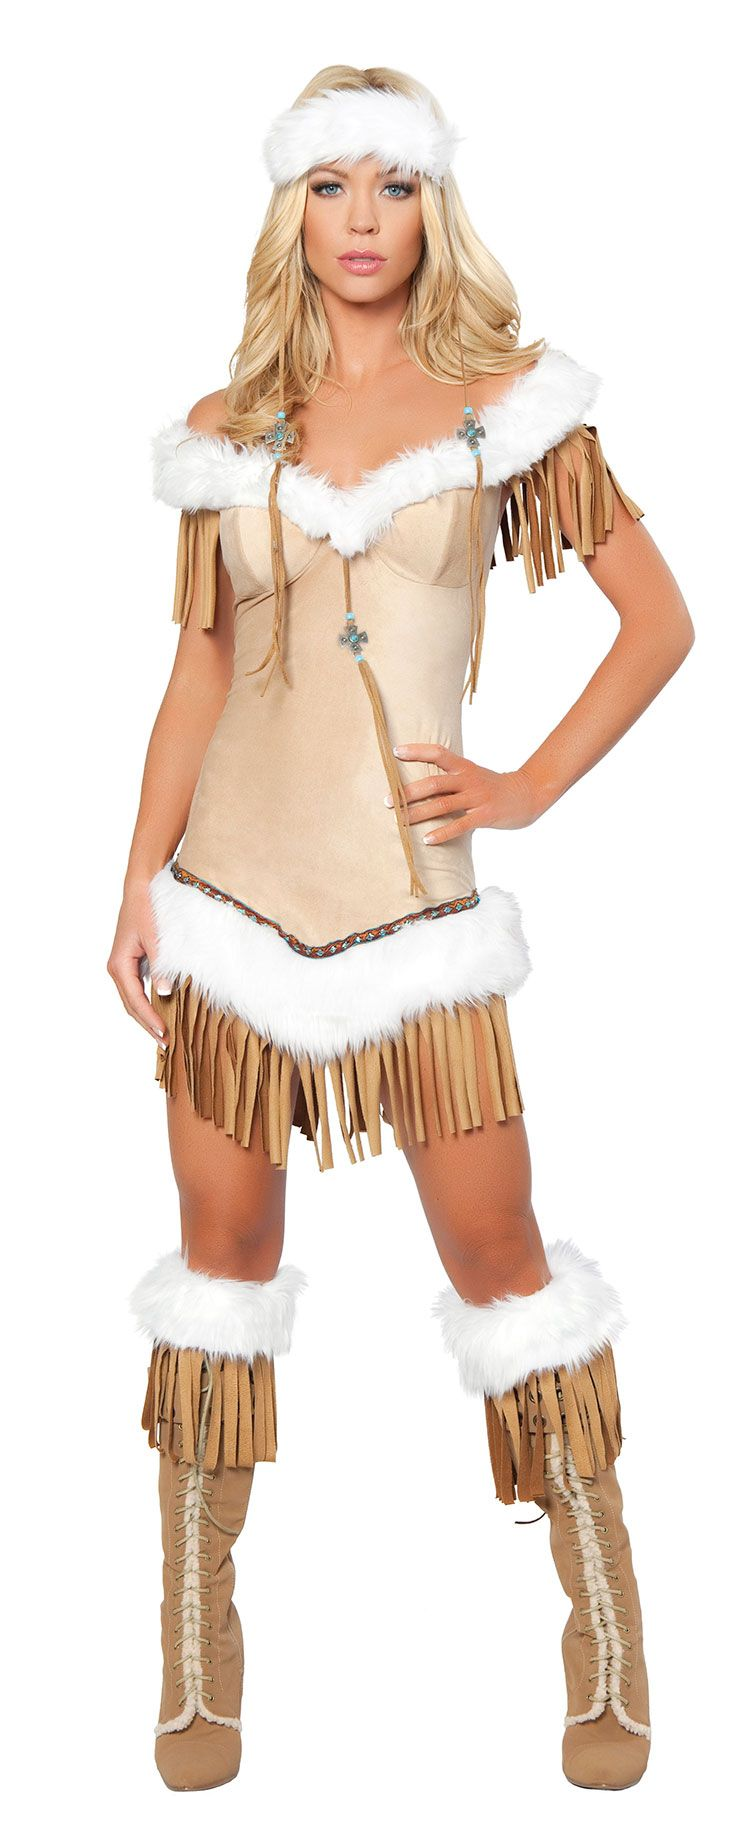 indian costumes | Sexy Indian Snow Princess Costume - Native American Indian Costumes  sc 1 st  Pinterest & indian costumes | Sexy Indian Snow Princess Costume - Native ...